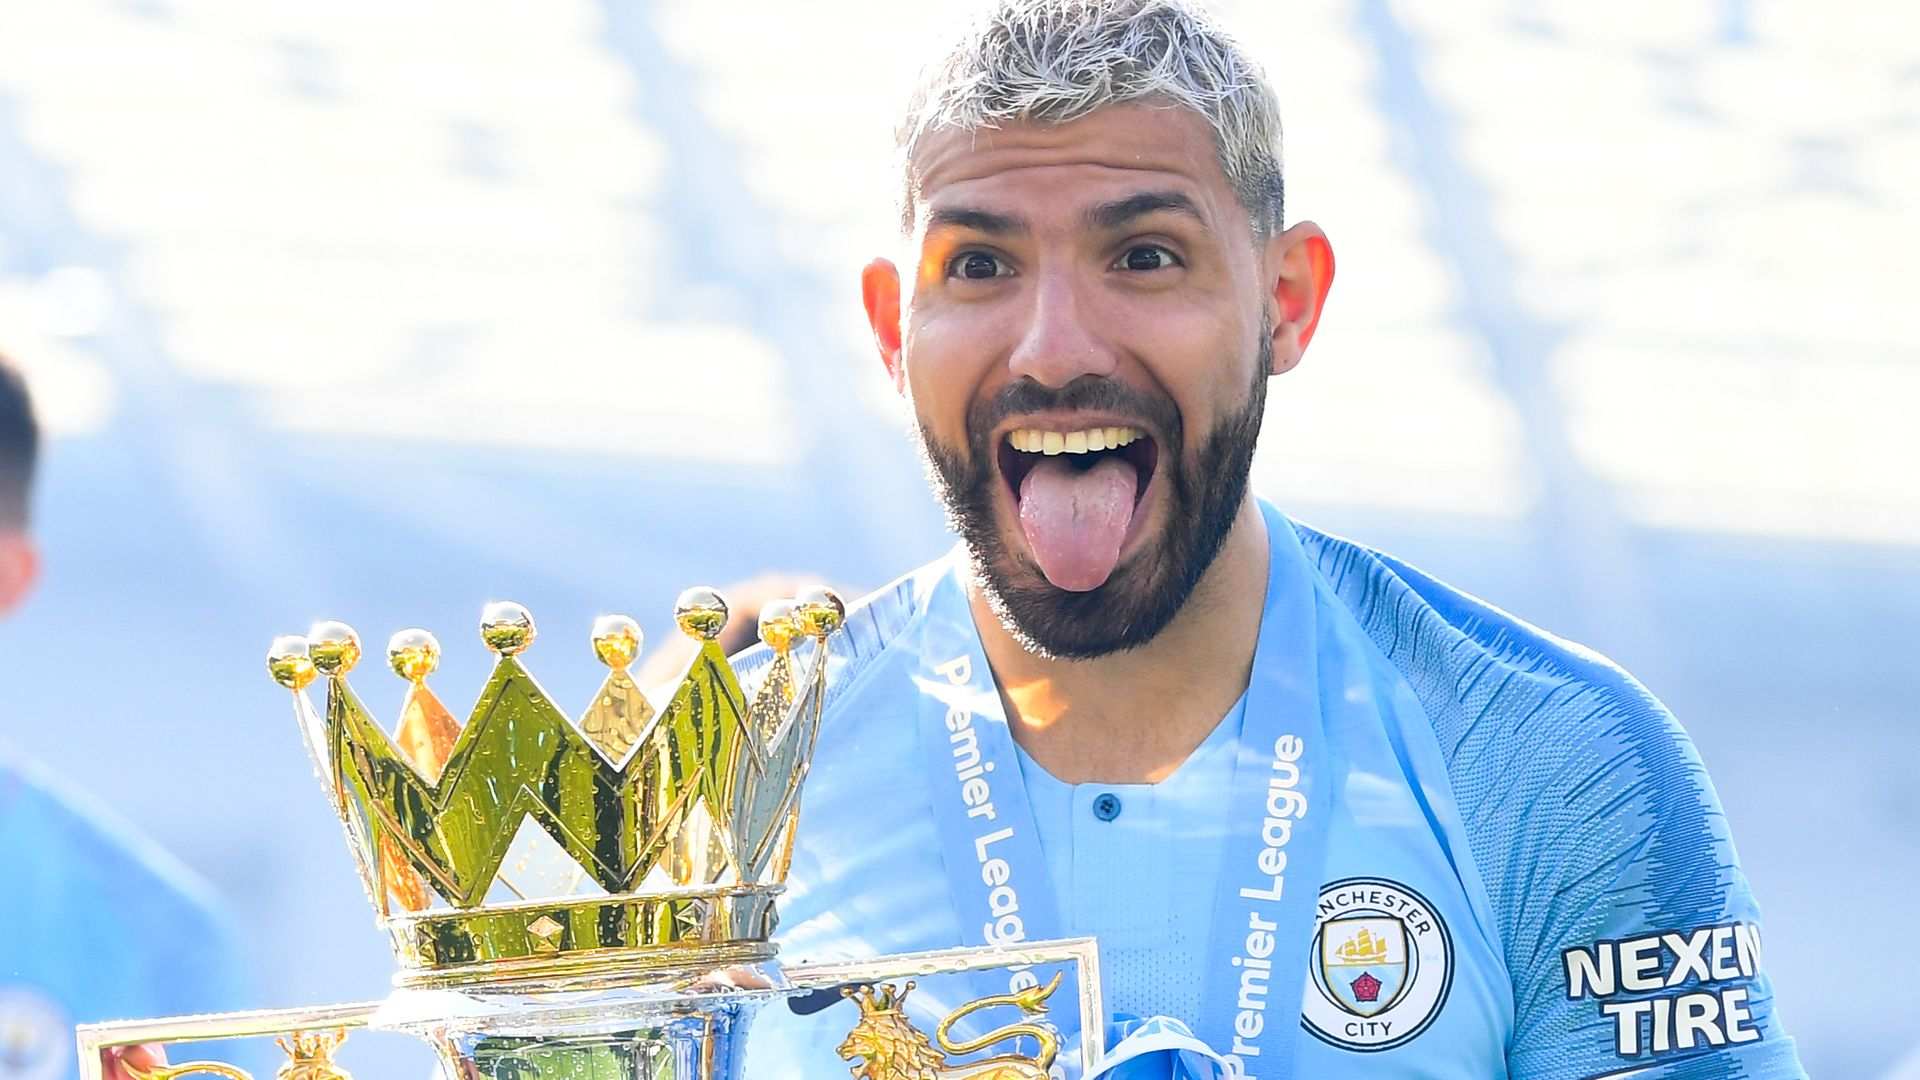 Sergio Aguero celebrates with the Premier League trophy after Manchester City clinched the Premier League title by beating Brighton on May 12, 2019 - Credit: Photo by Michael Regan/Getty Images